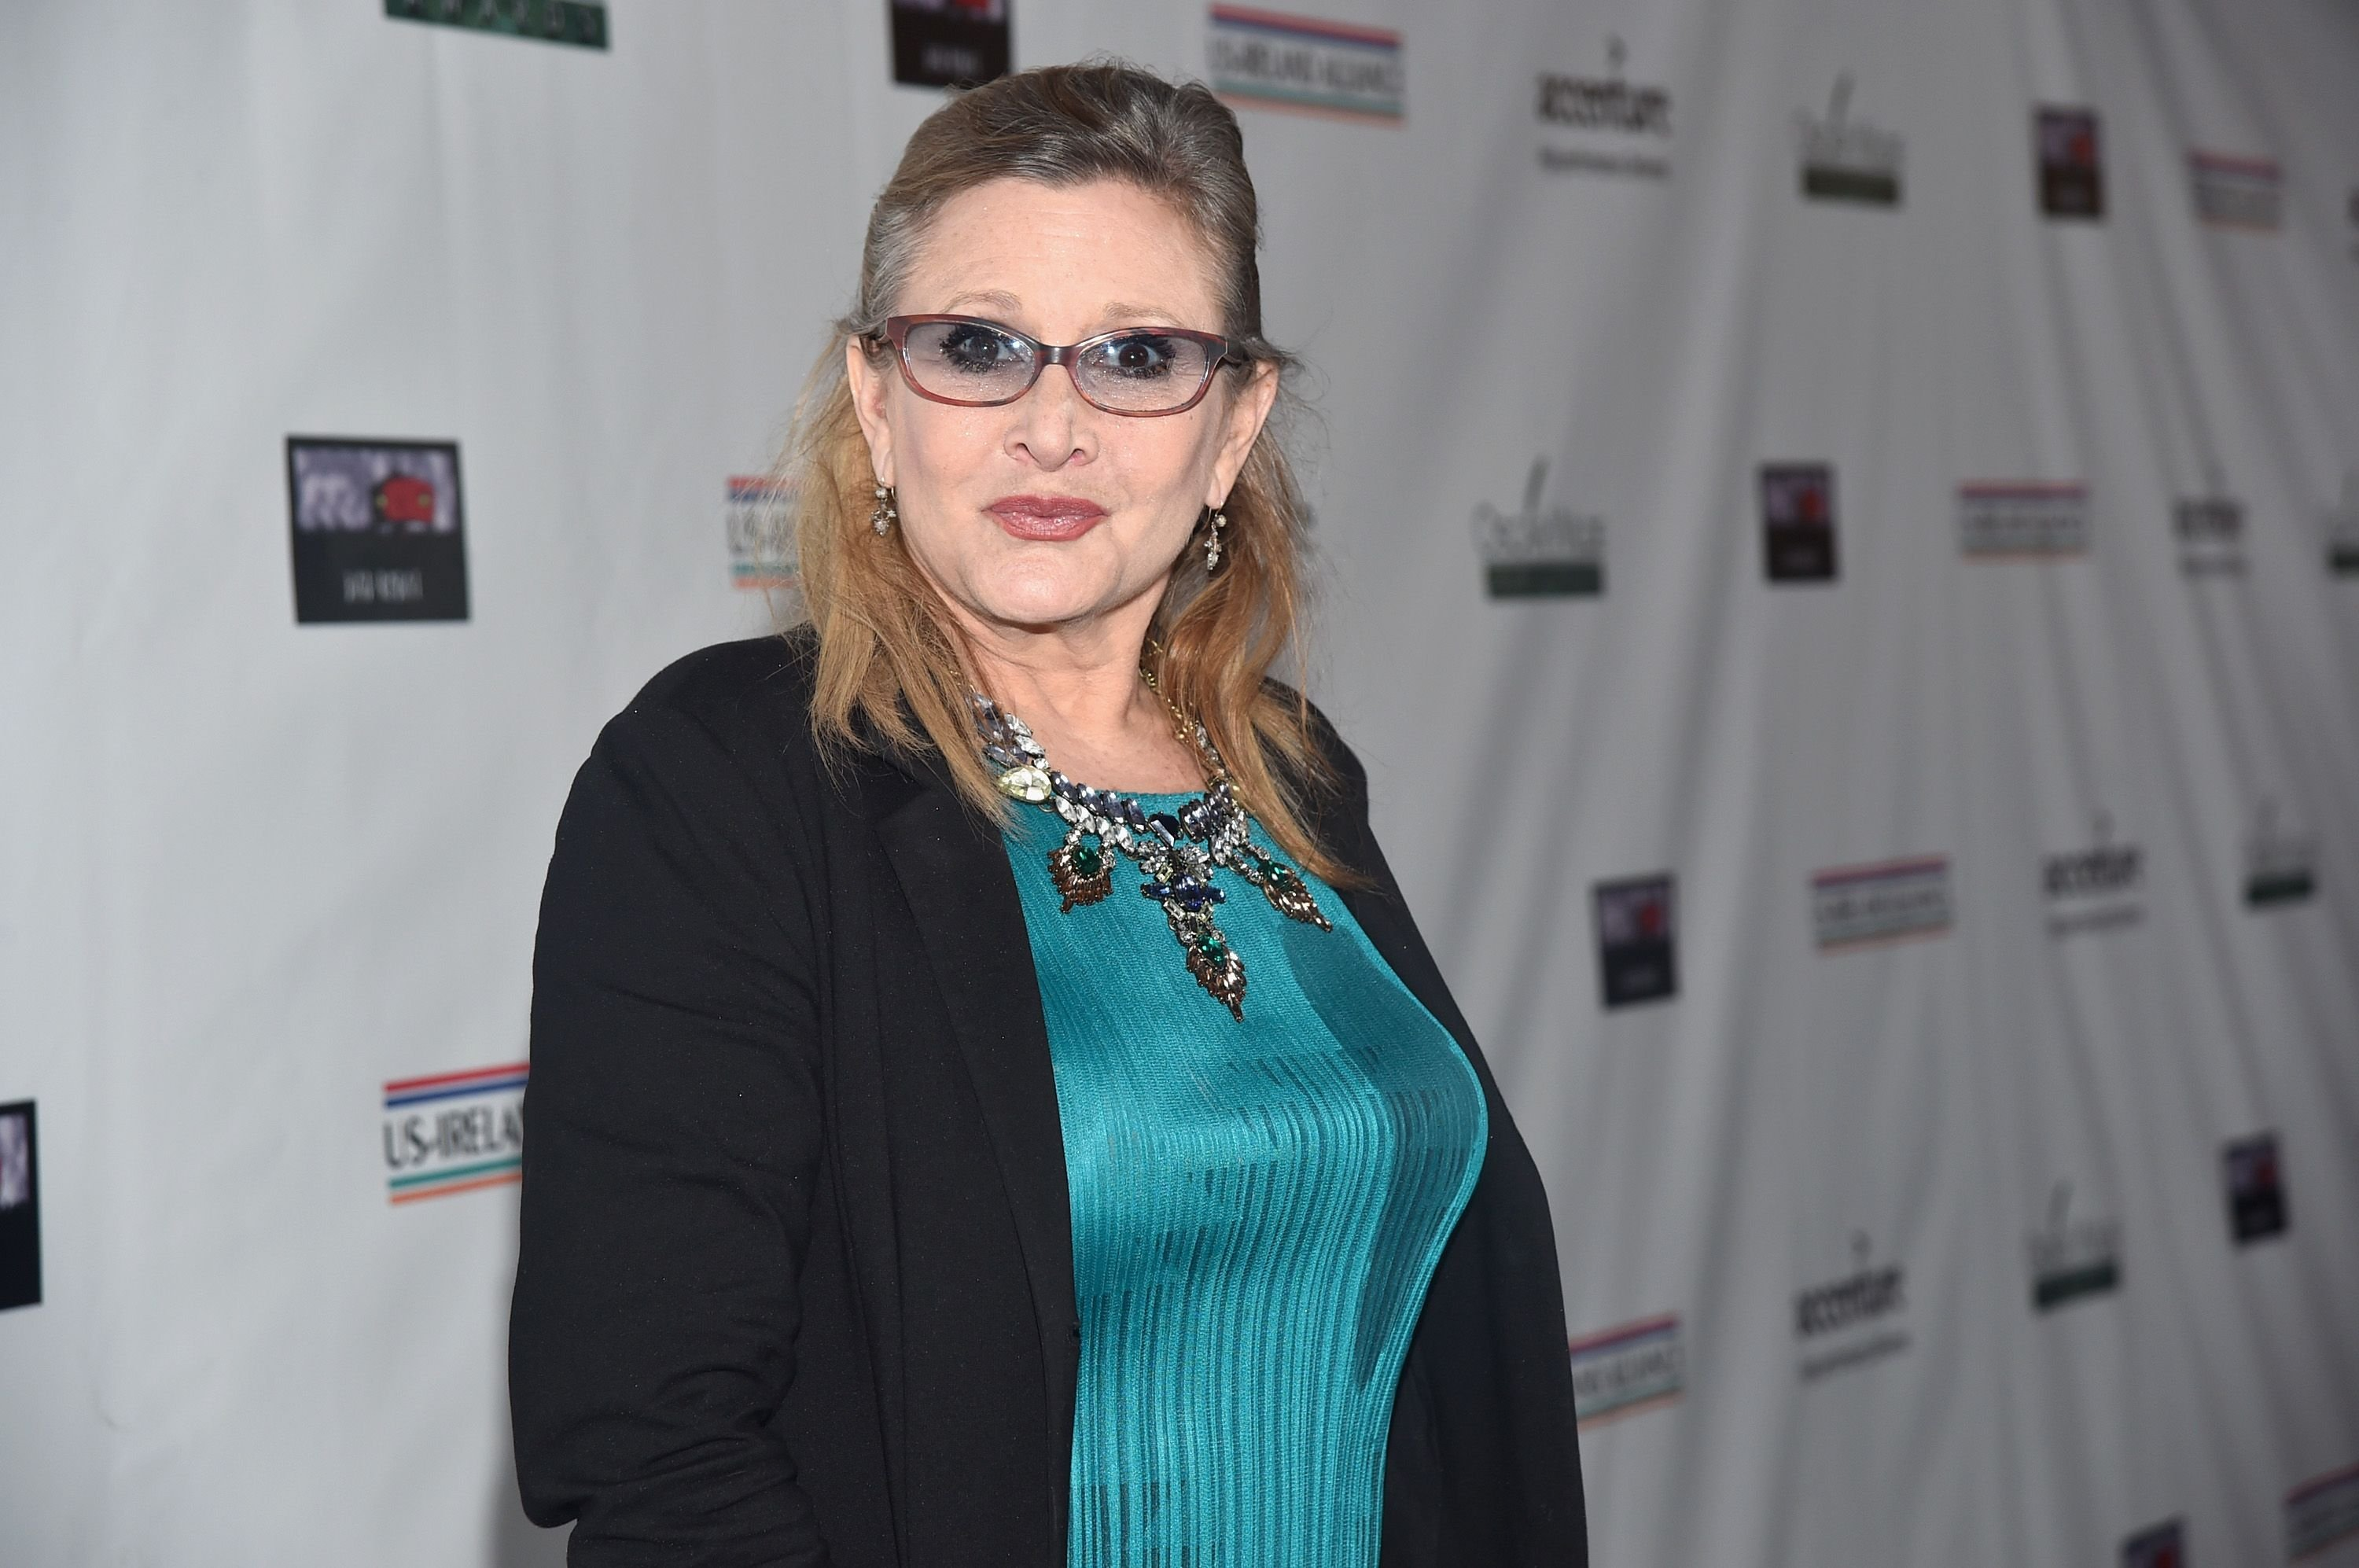 Carrie Fisher at the US-Ireland Alliance's Oscar Wilde Awards event on February 19, 2015, in Santa Monica, California | Photo: Alberto E. Rodriguez/Getty Images